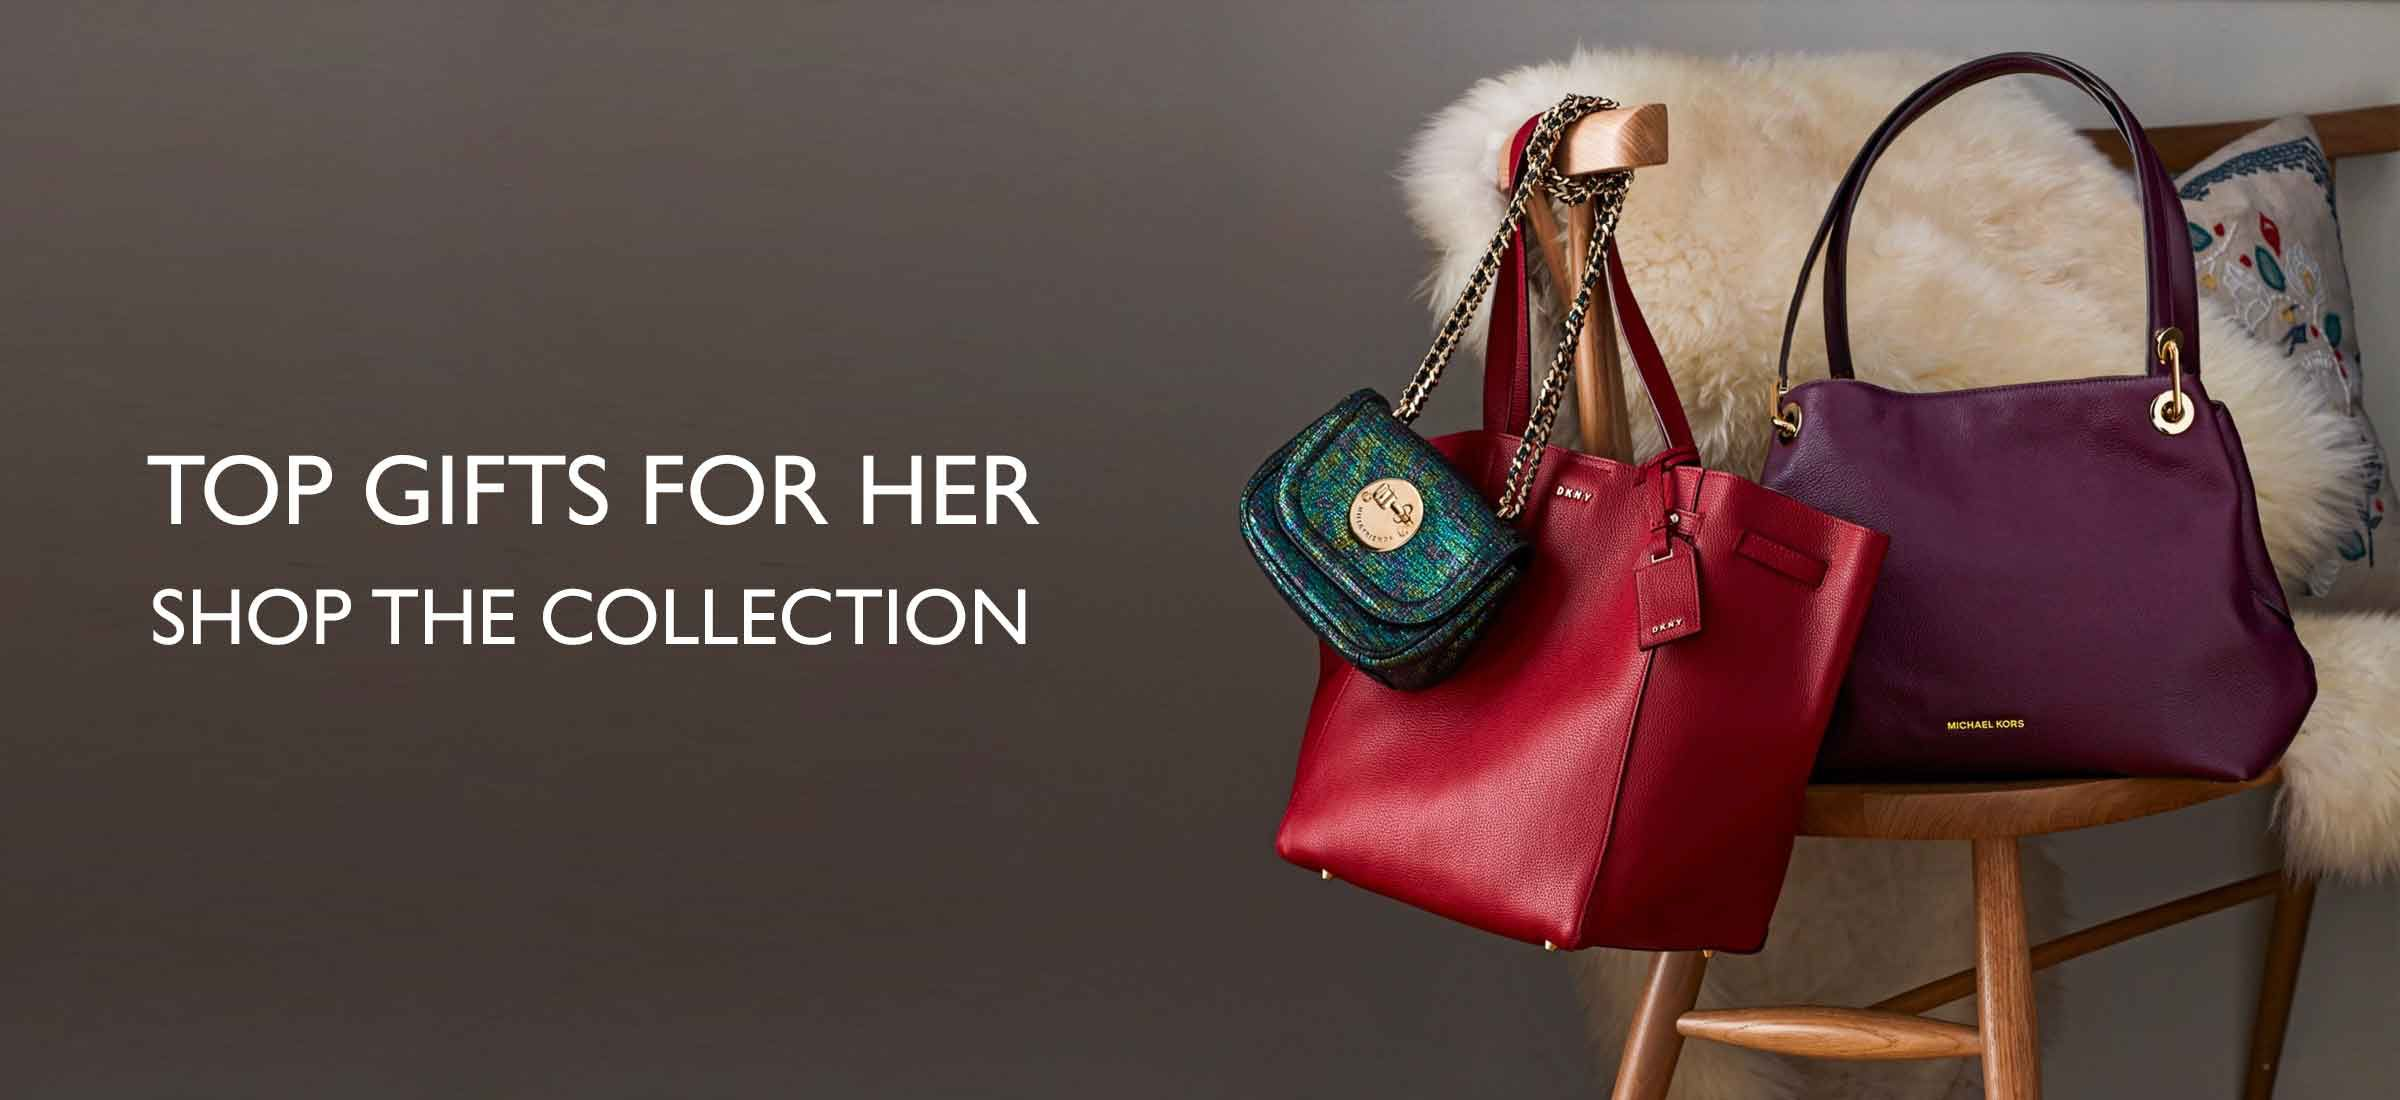 Gifts for Her | Gifts for Women | John Lewis & Partners